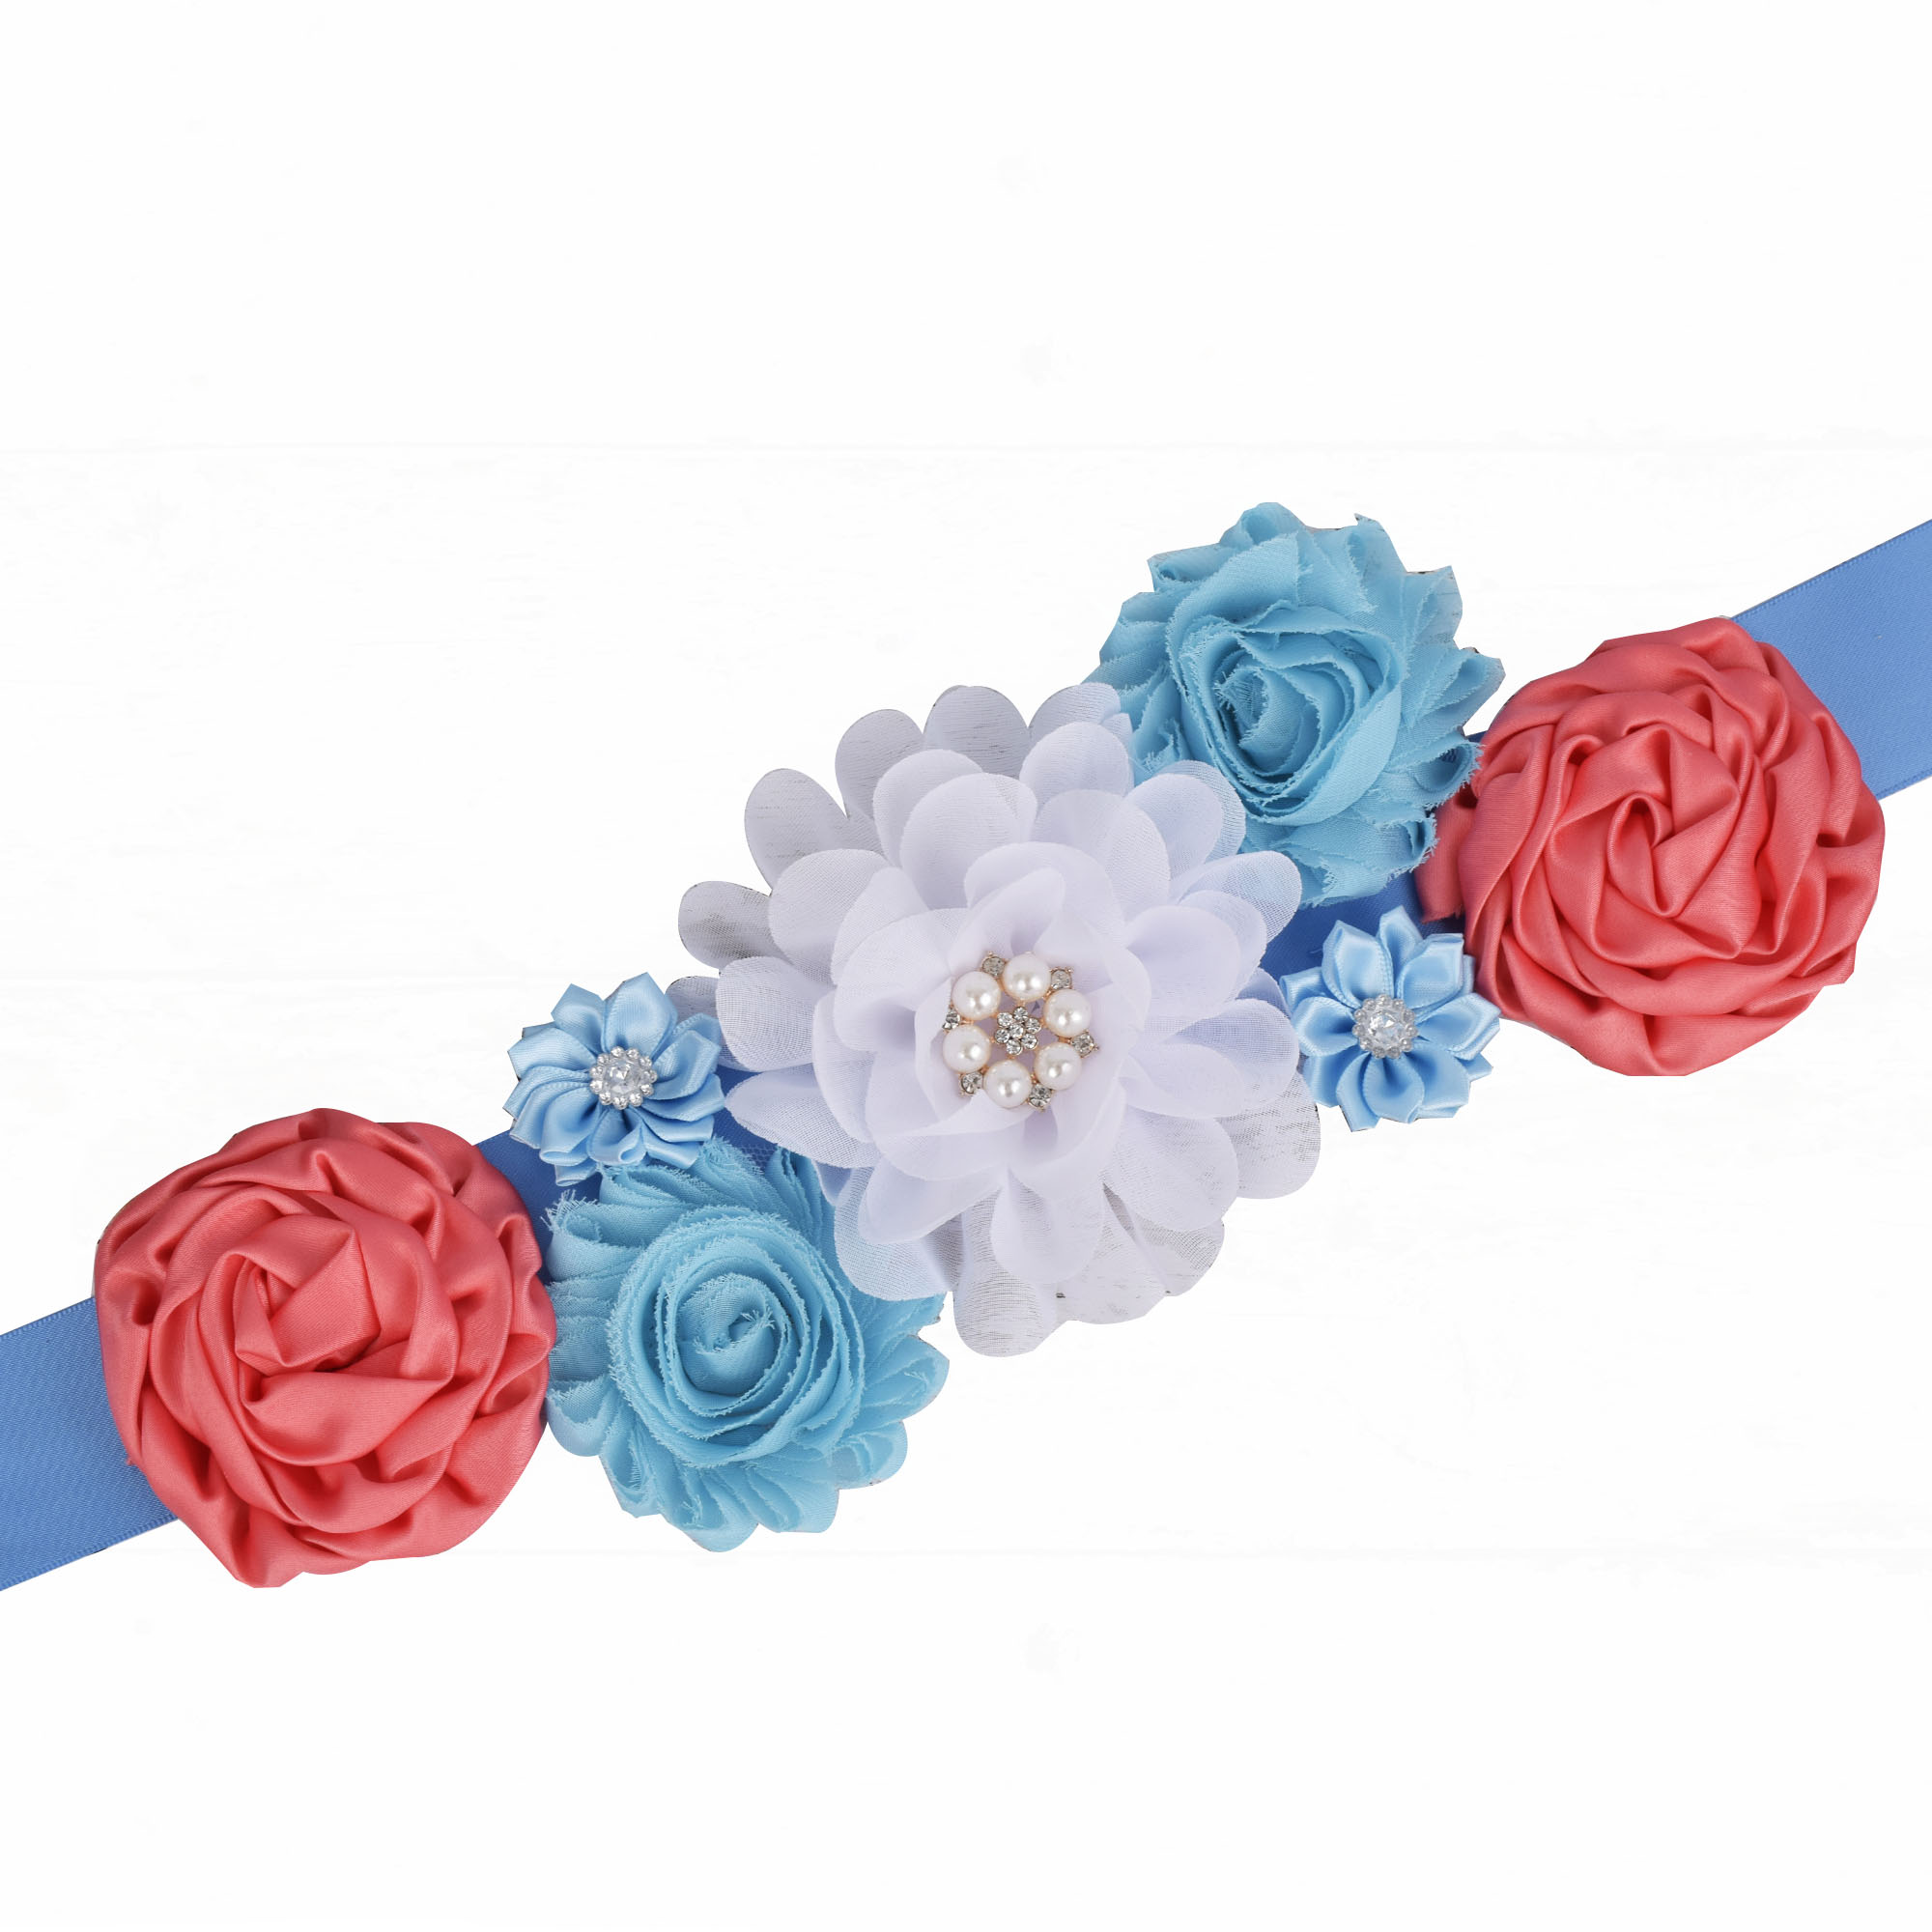 Theeper New Maternity Sash Pregnancy Belly Belt Baby Shower Party Flower Sash  Photo Prop Woman Floral Sash Wedding Party Belt